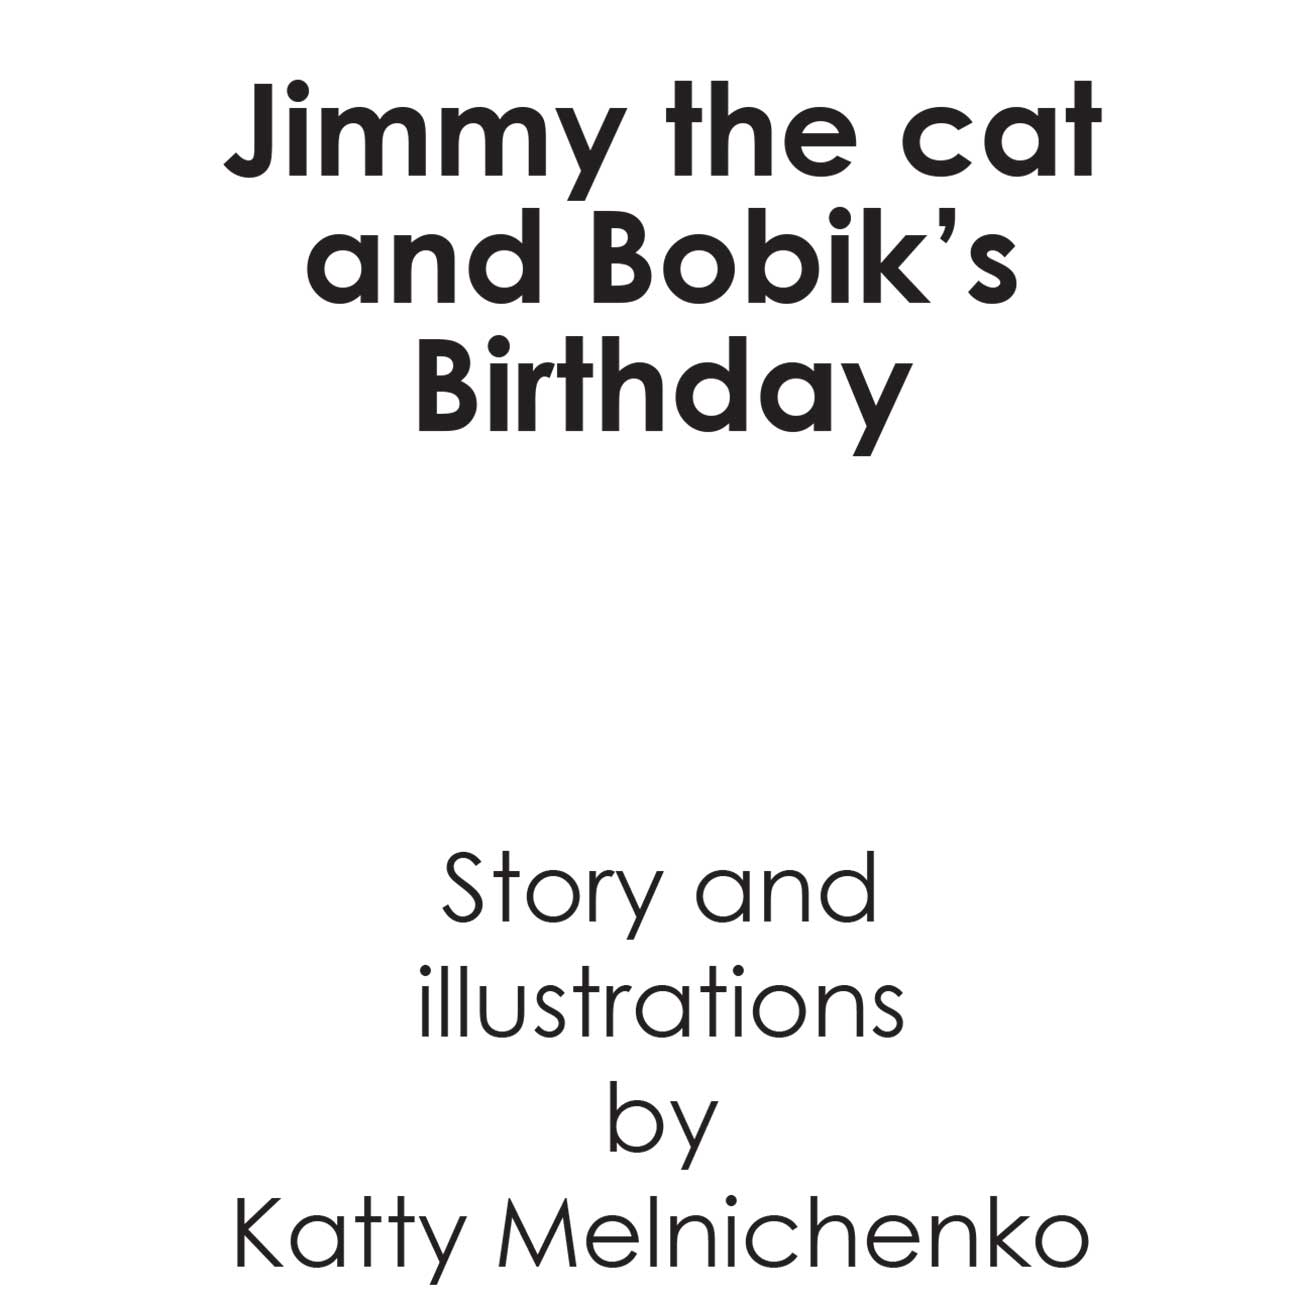 Children's early reader free kids stories Jimmy the Cat and Bobiks Birthday 3